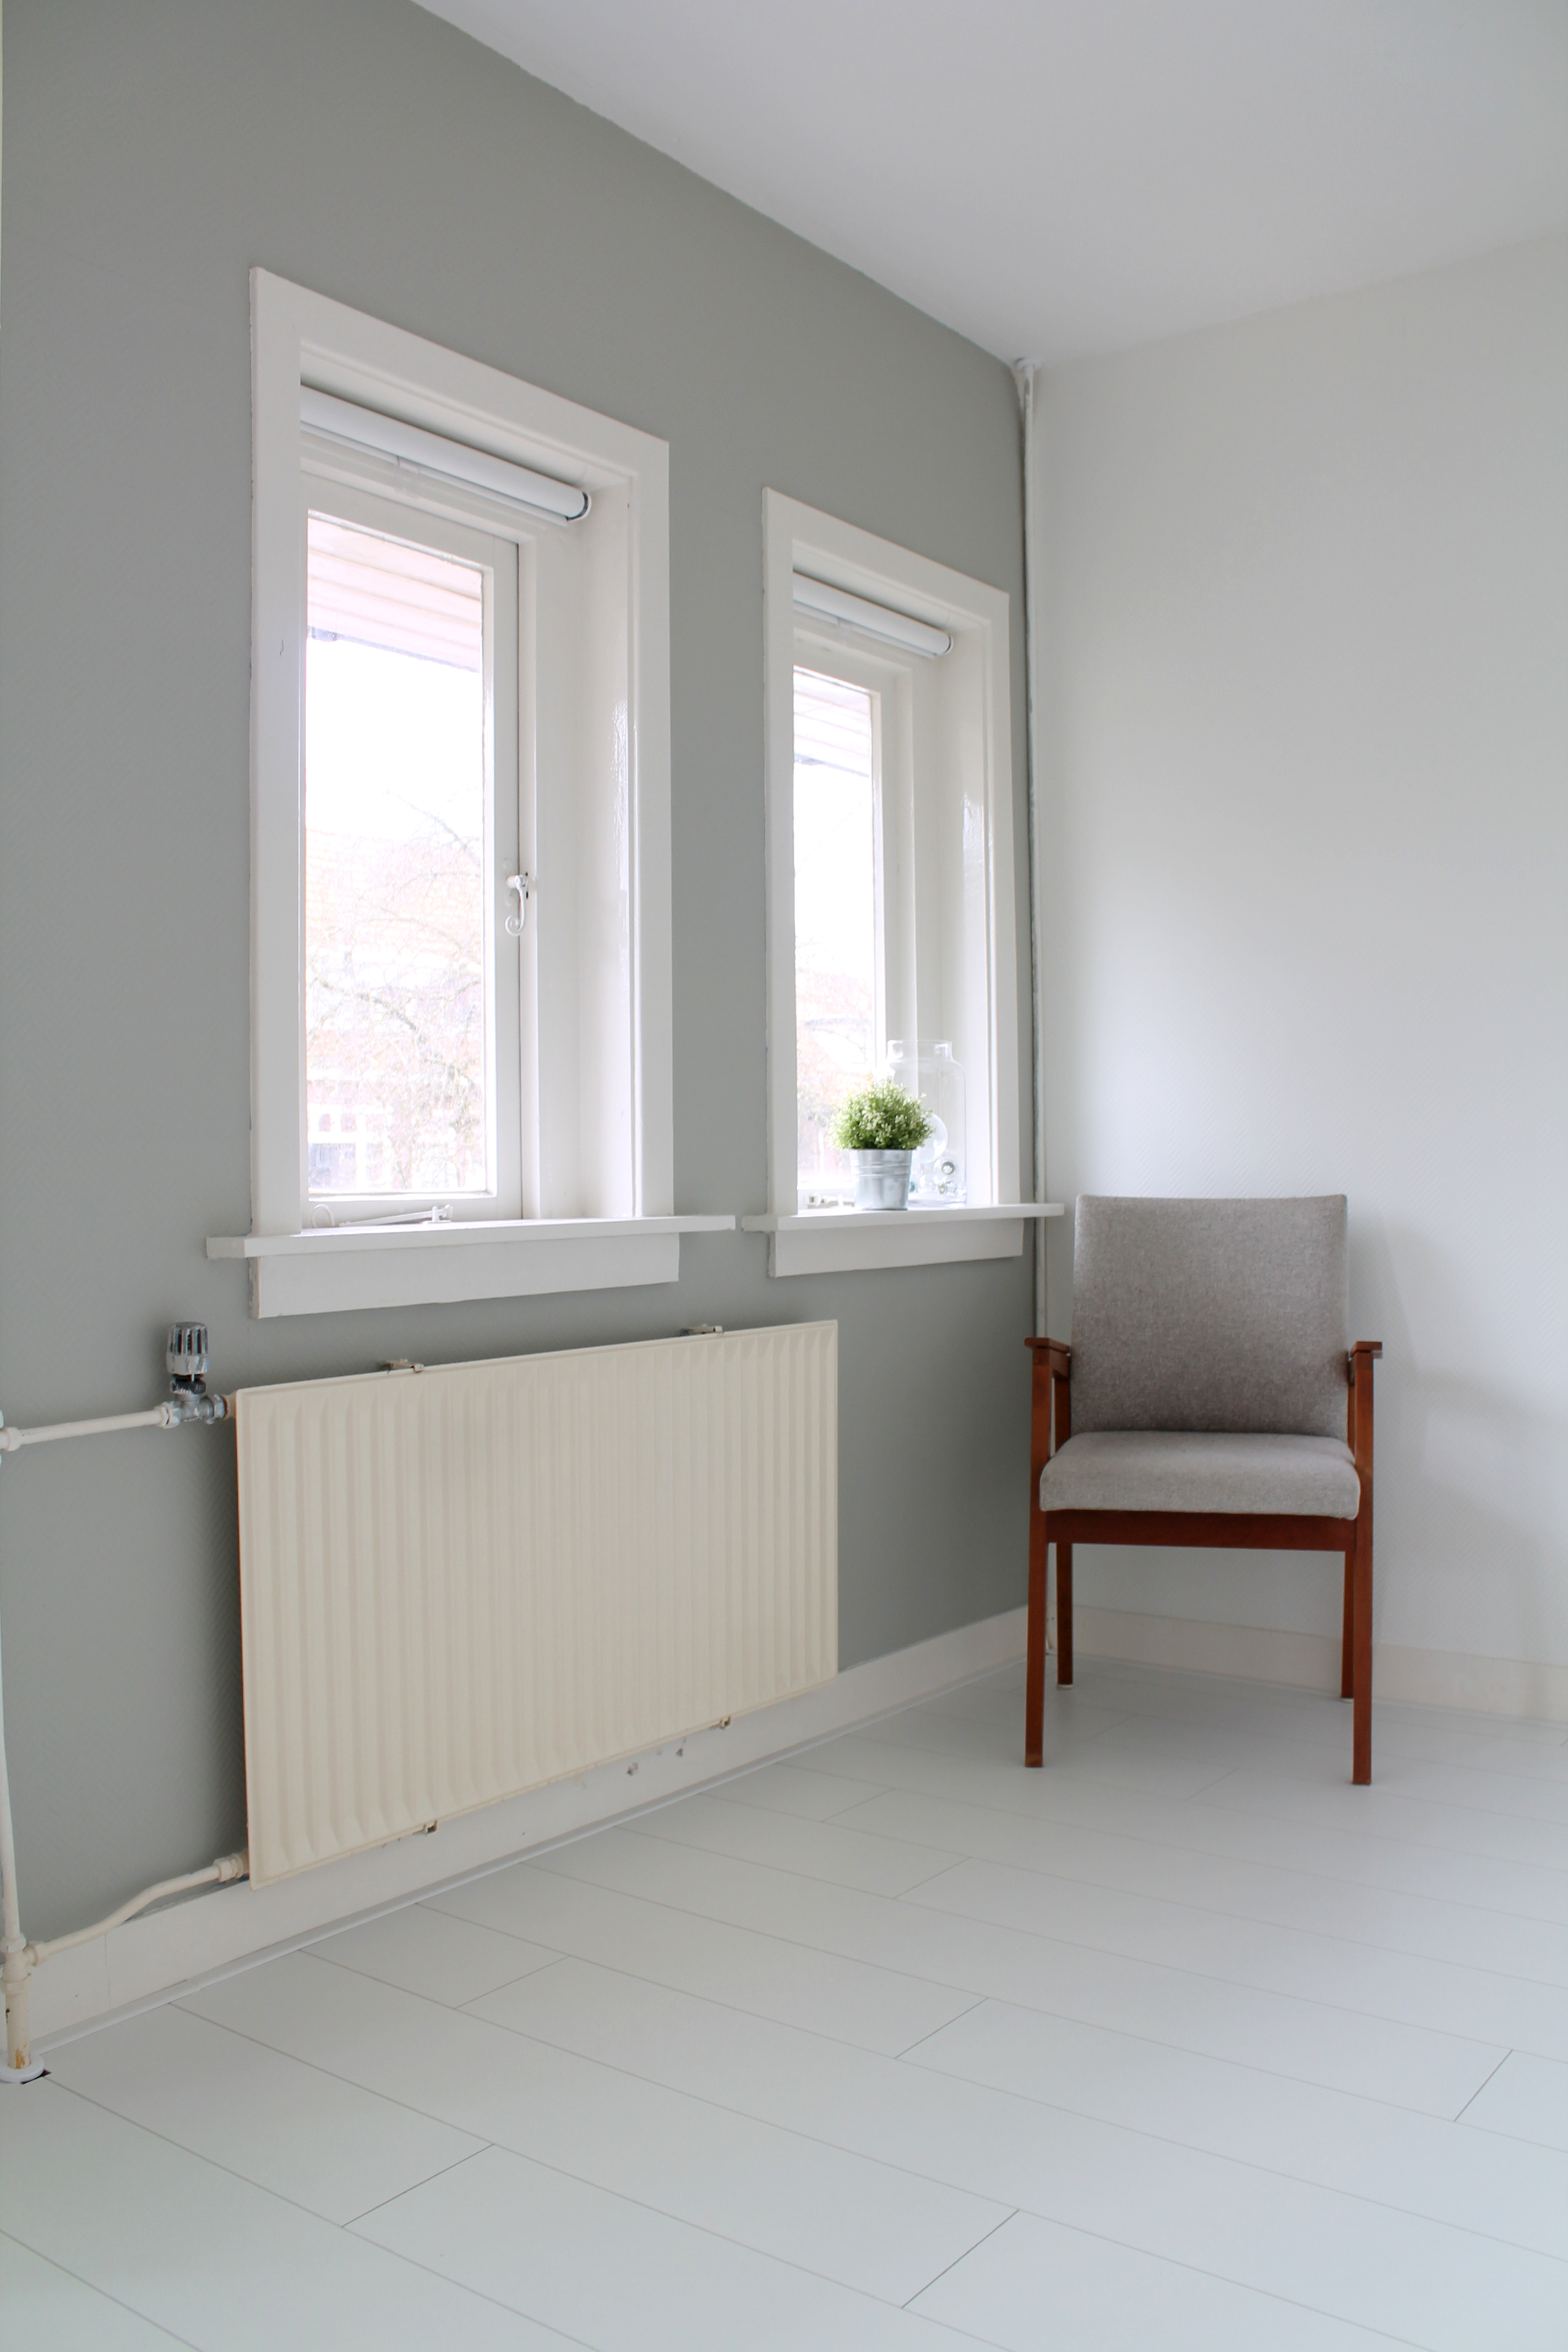 Woonkamer Taupe Muur.Muur Taupe Taupe Muur Grijze Bank Inspirational Grijs Taupe